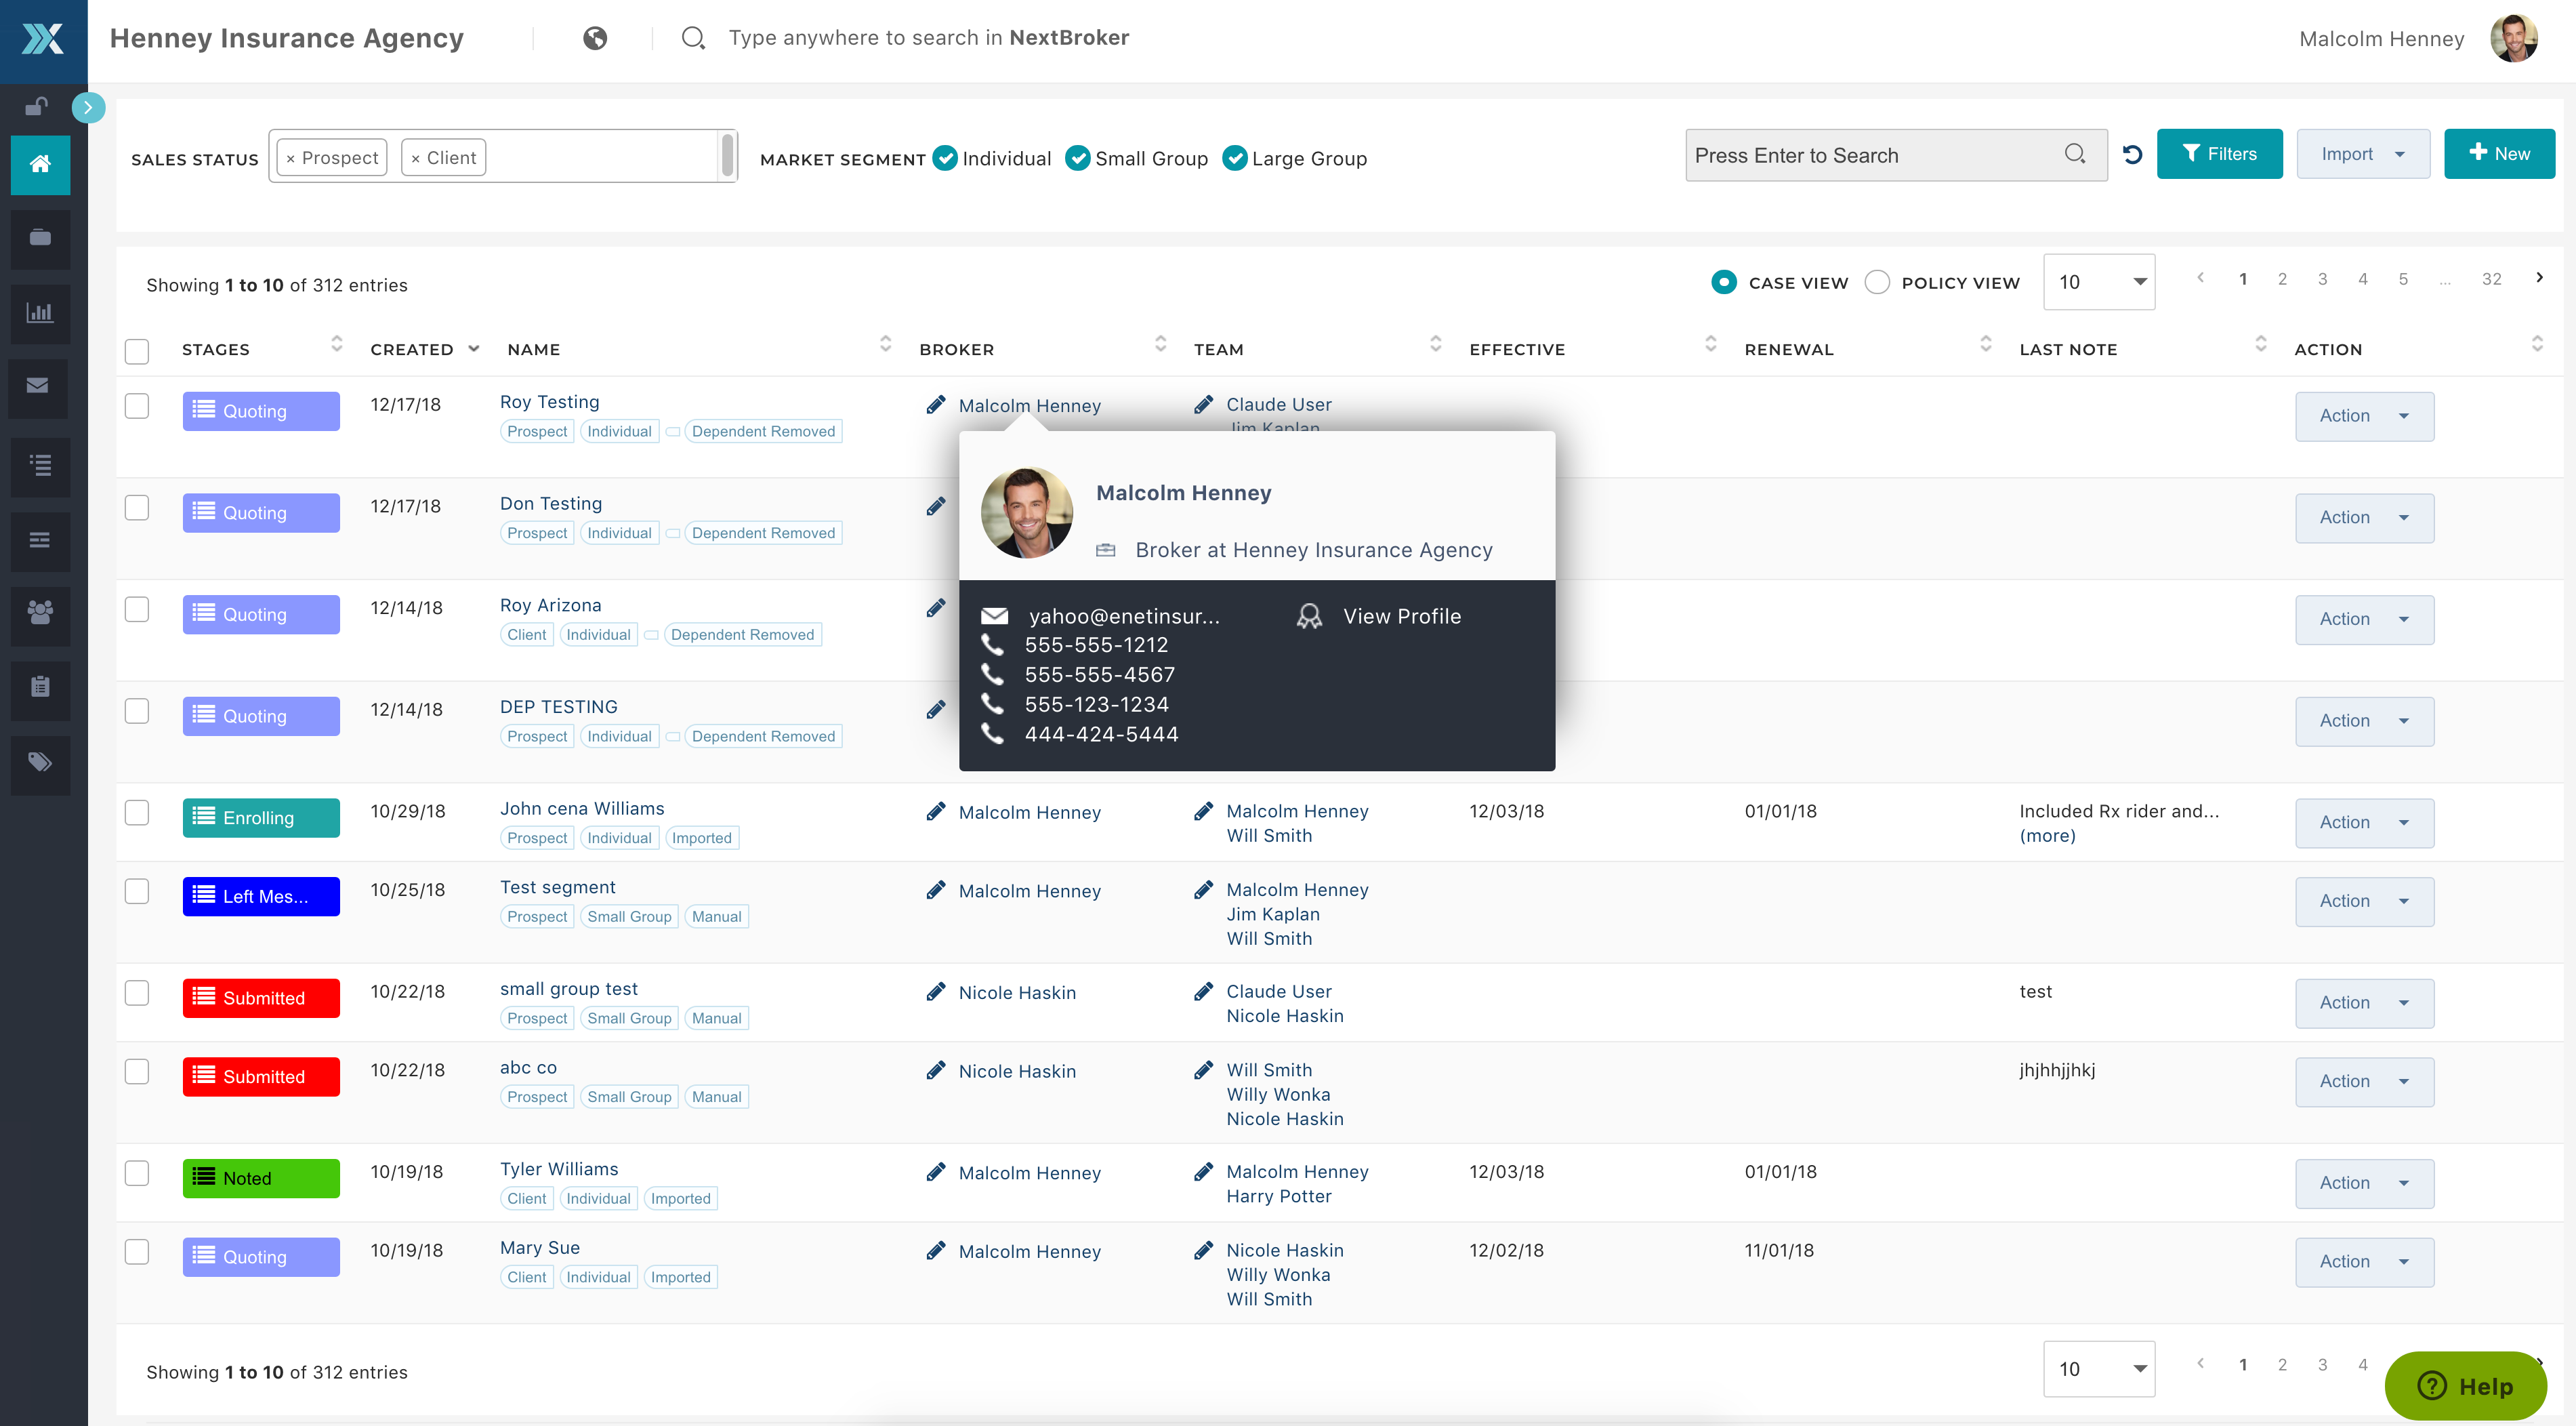 NextAgency screenshot: Use CRM tools to automate sales and marketing processes and track prospects and clients